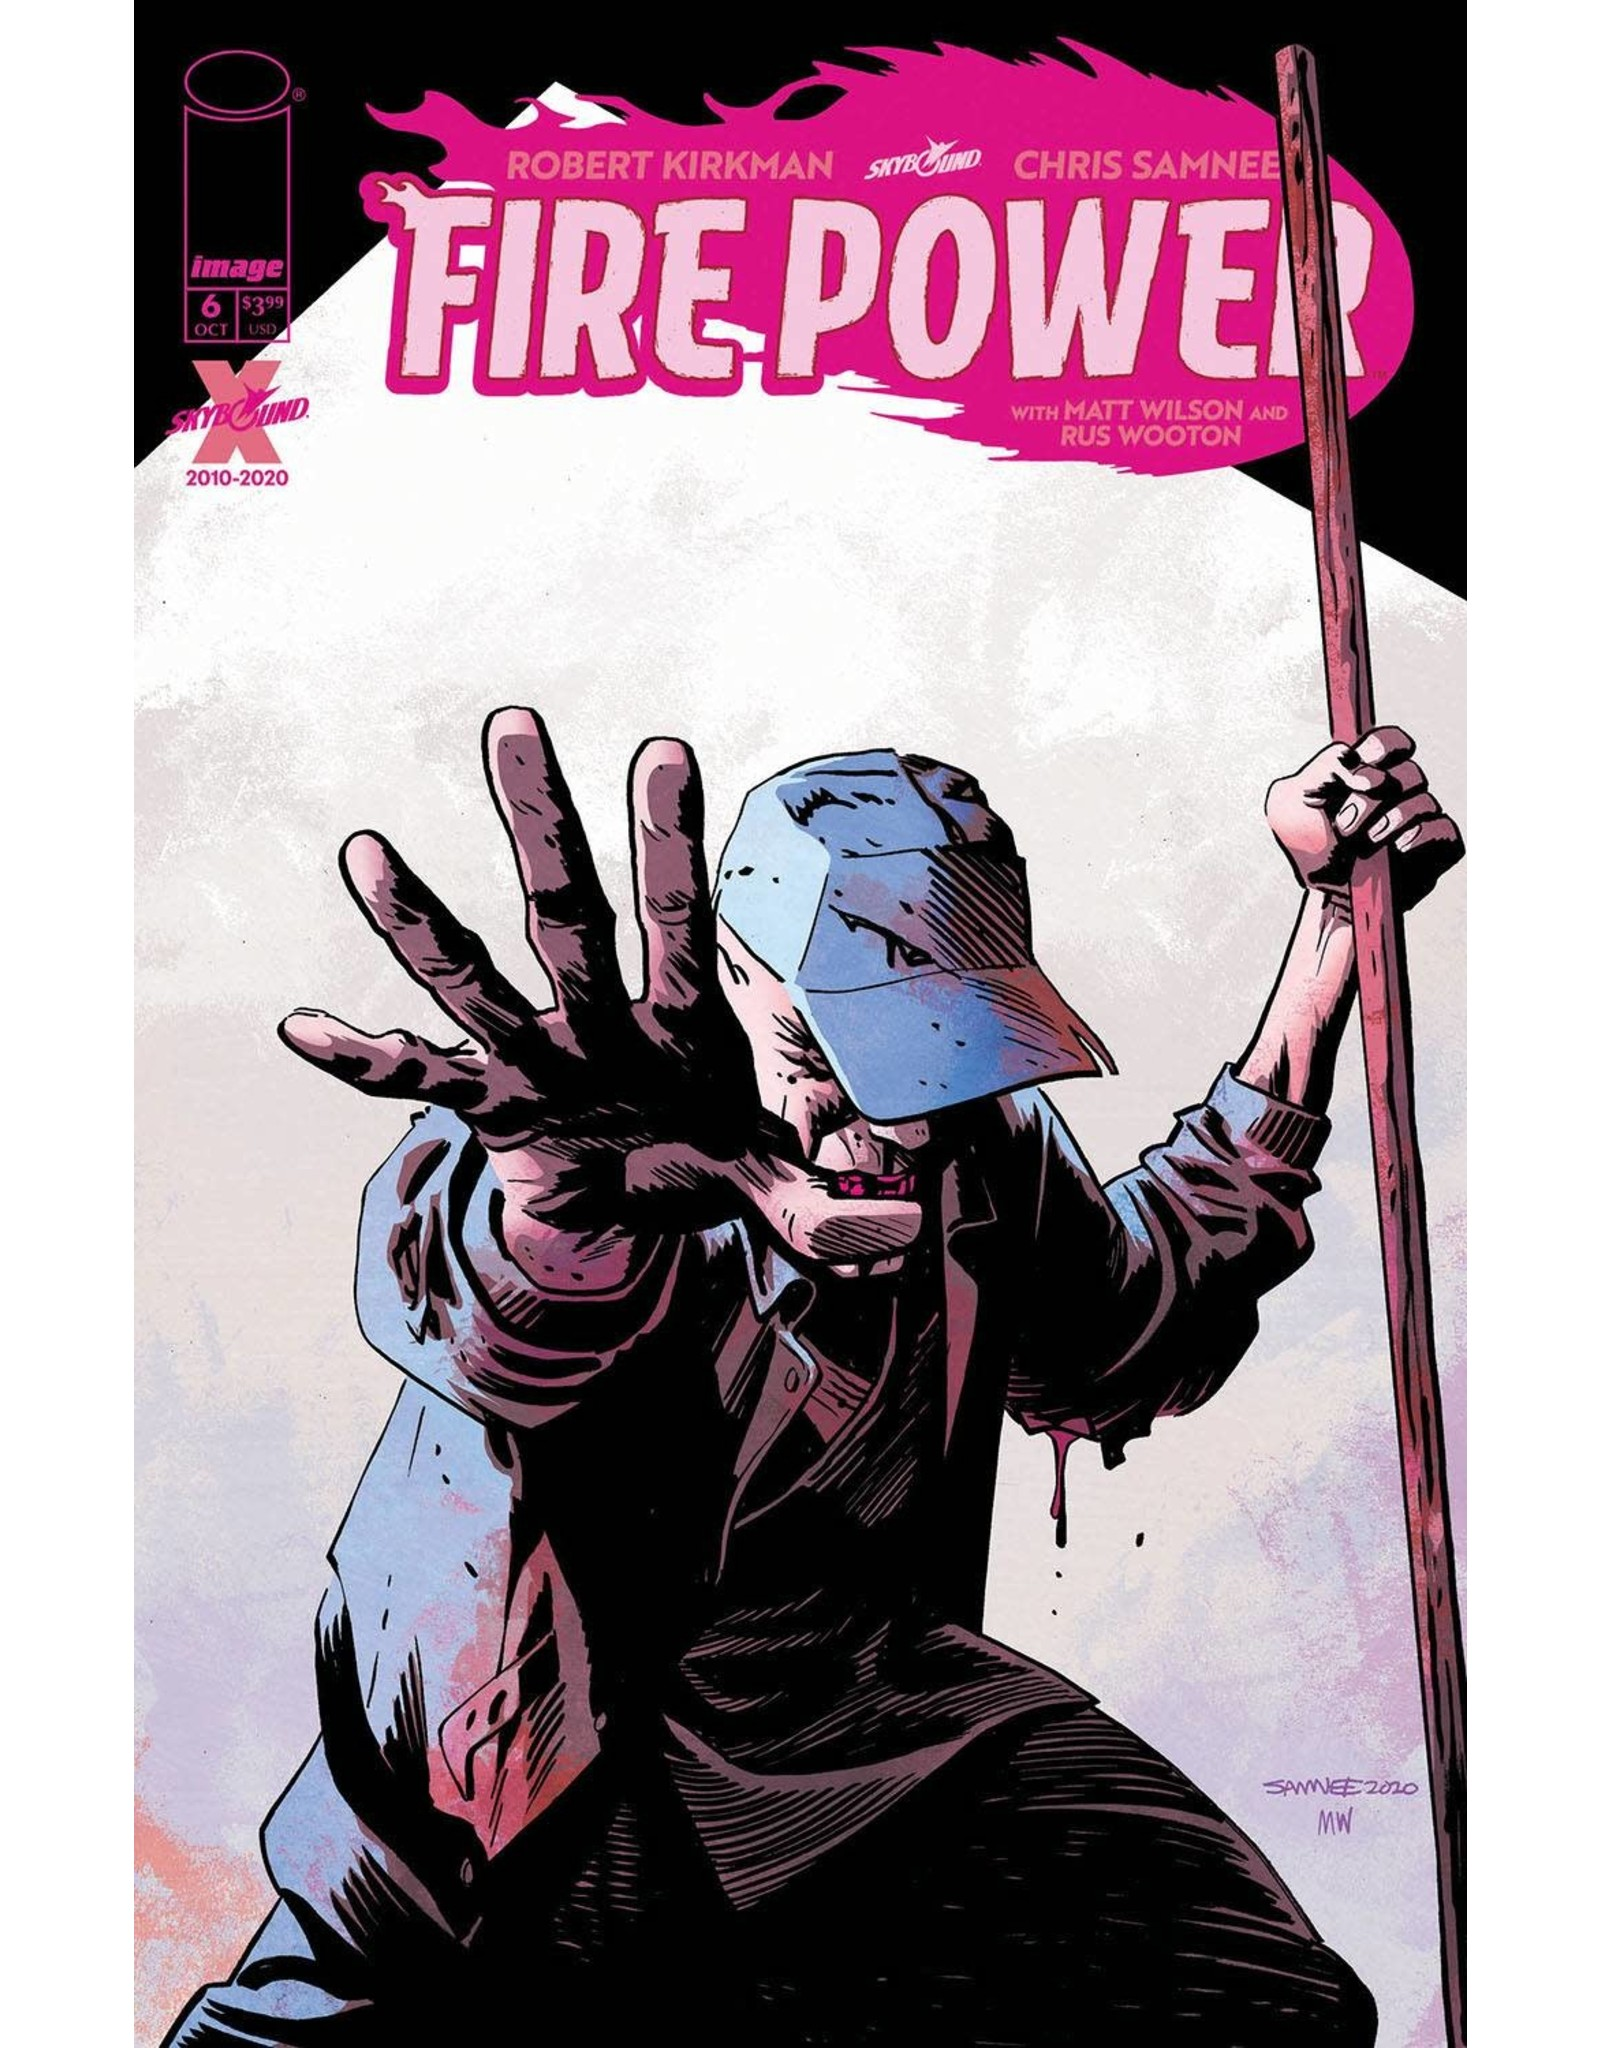 Image Comics FIRE POWER BY KIRKMAN & SAMNEE #6